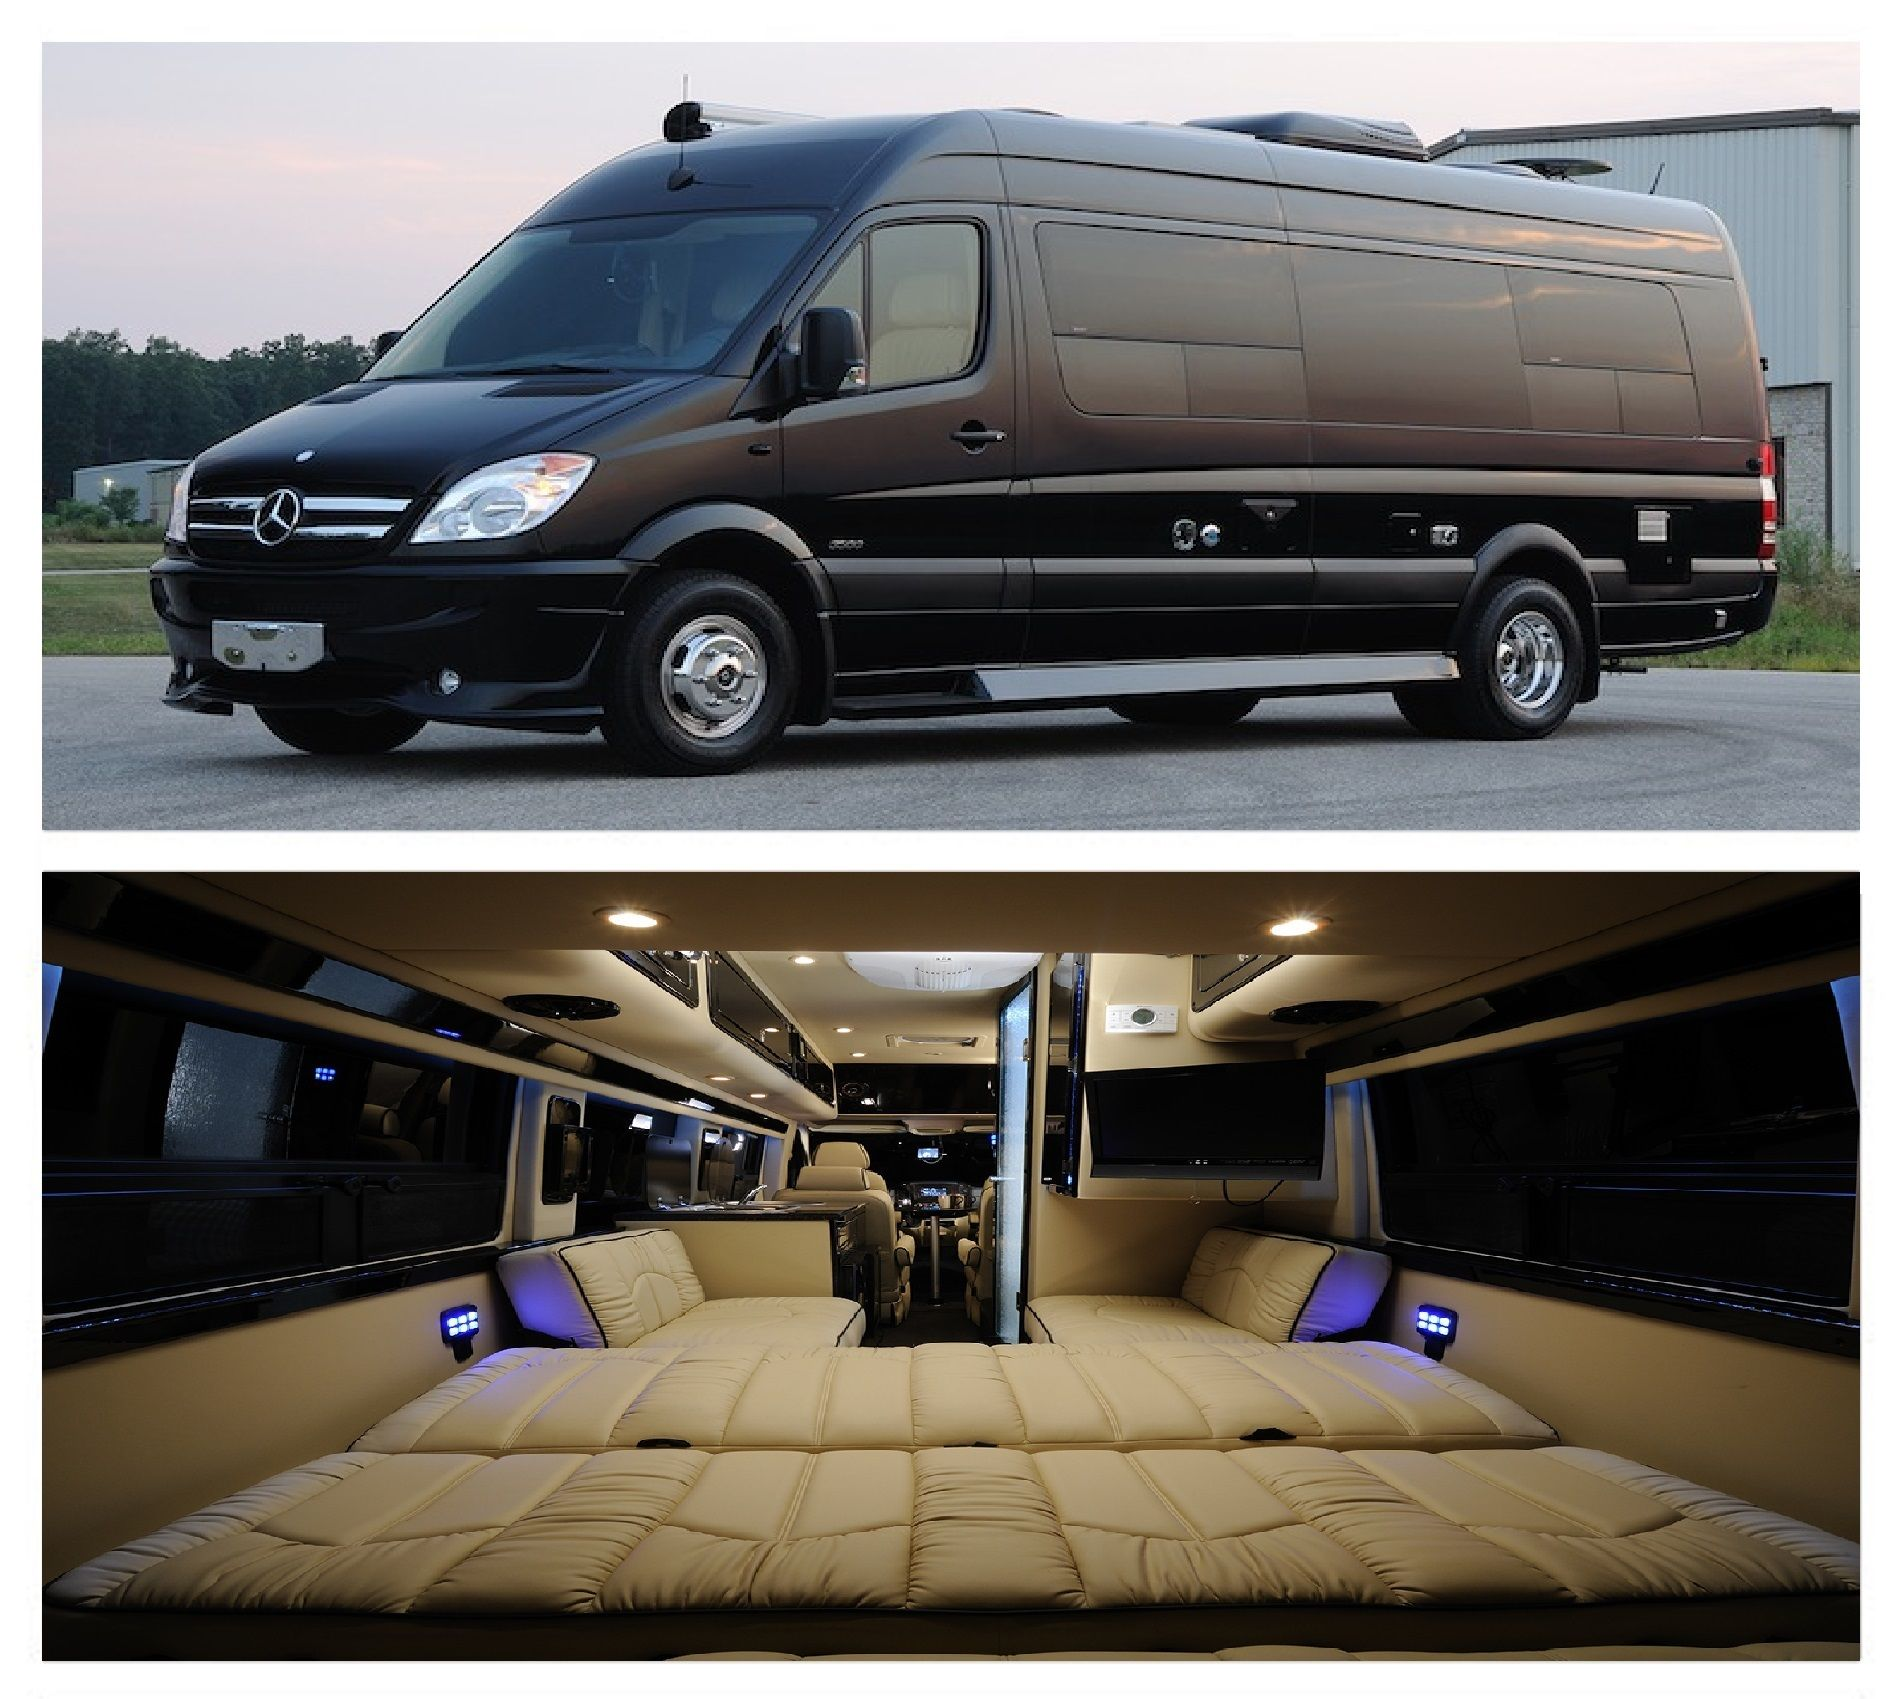 pin by justin jackson on rv racing rates rv vehicle. Black Bedroom Furniture Sets. Home Design Ideas